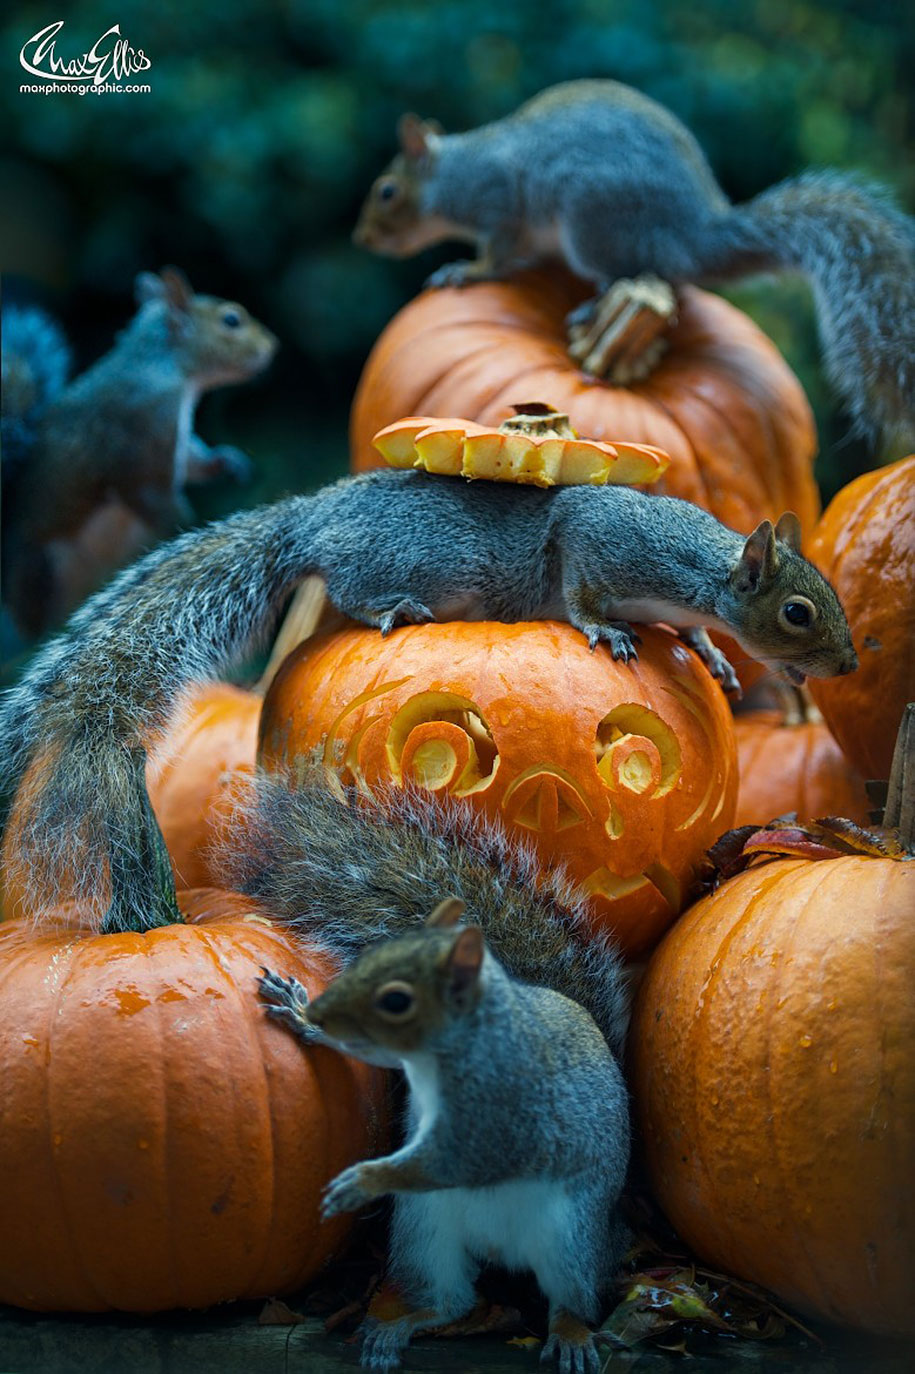 squirrel-pumpkin-funny-photography-max-ellis-5